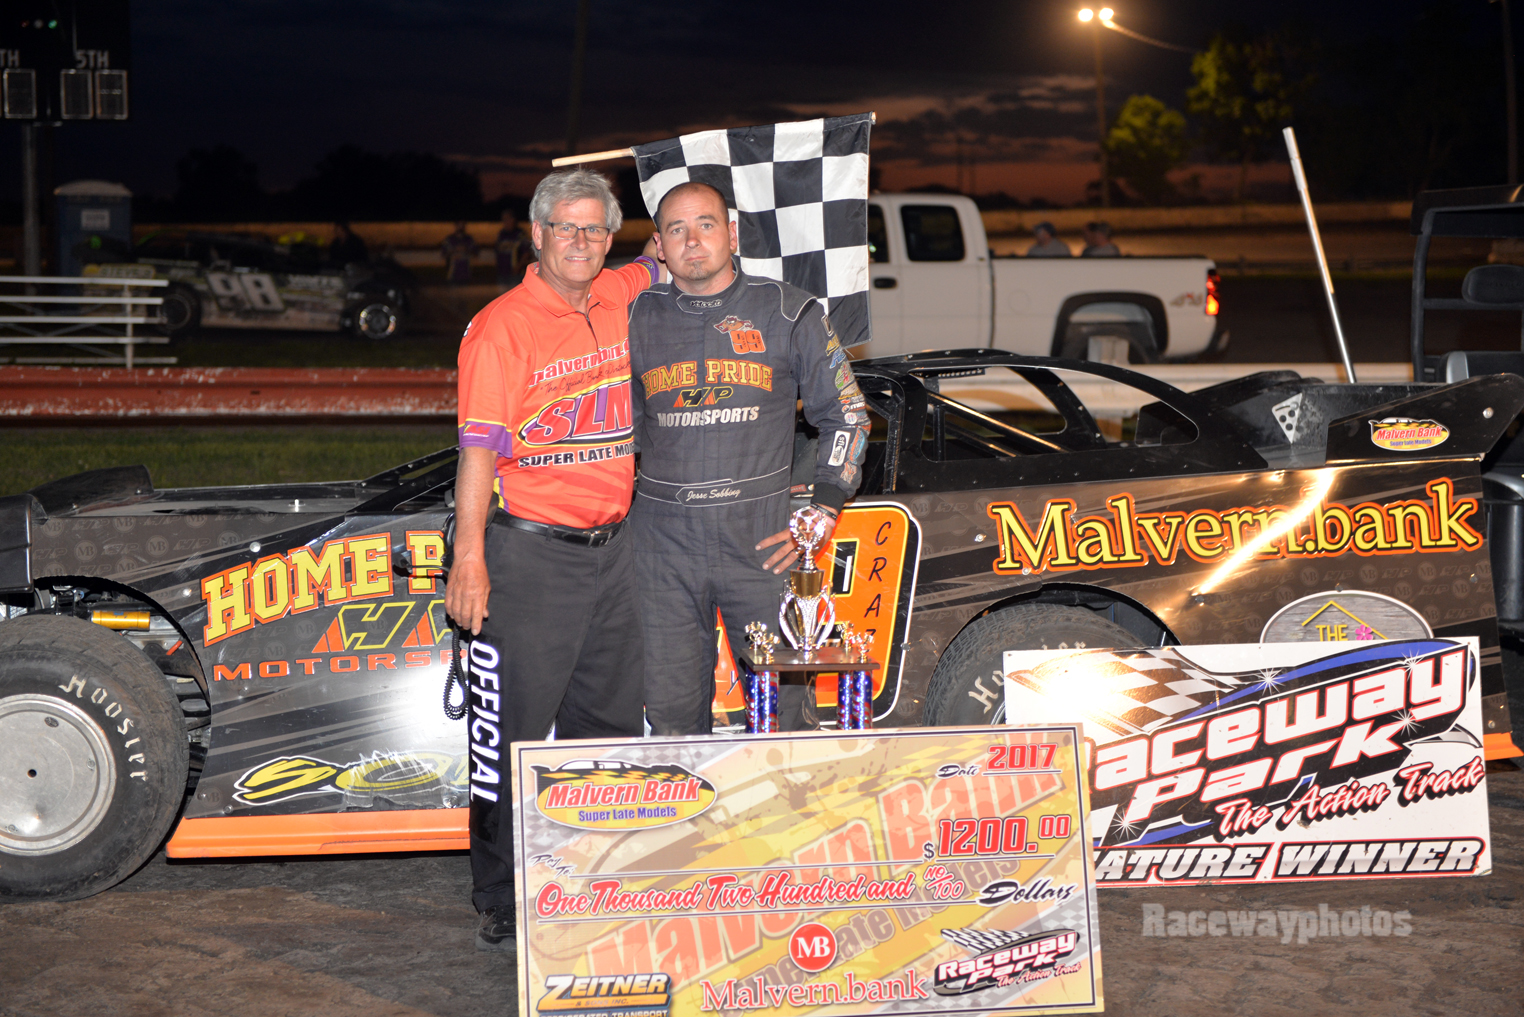 Three Races and three different winners over Memorial Day weekend